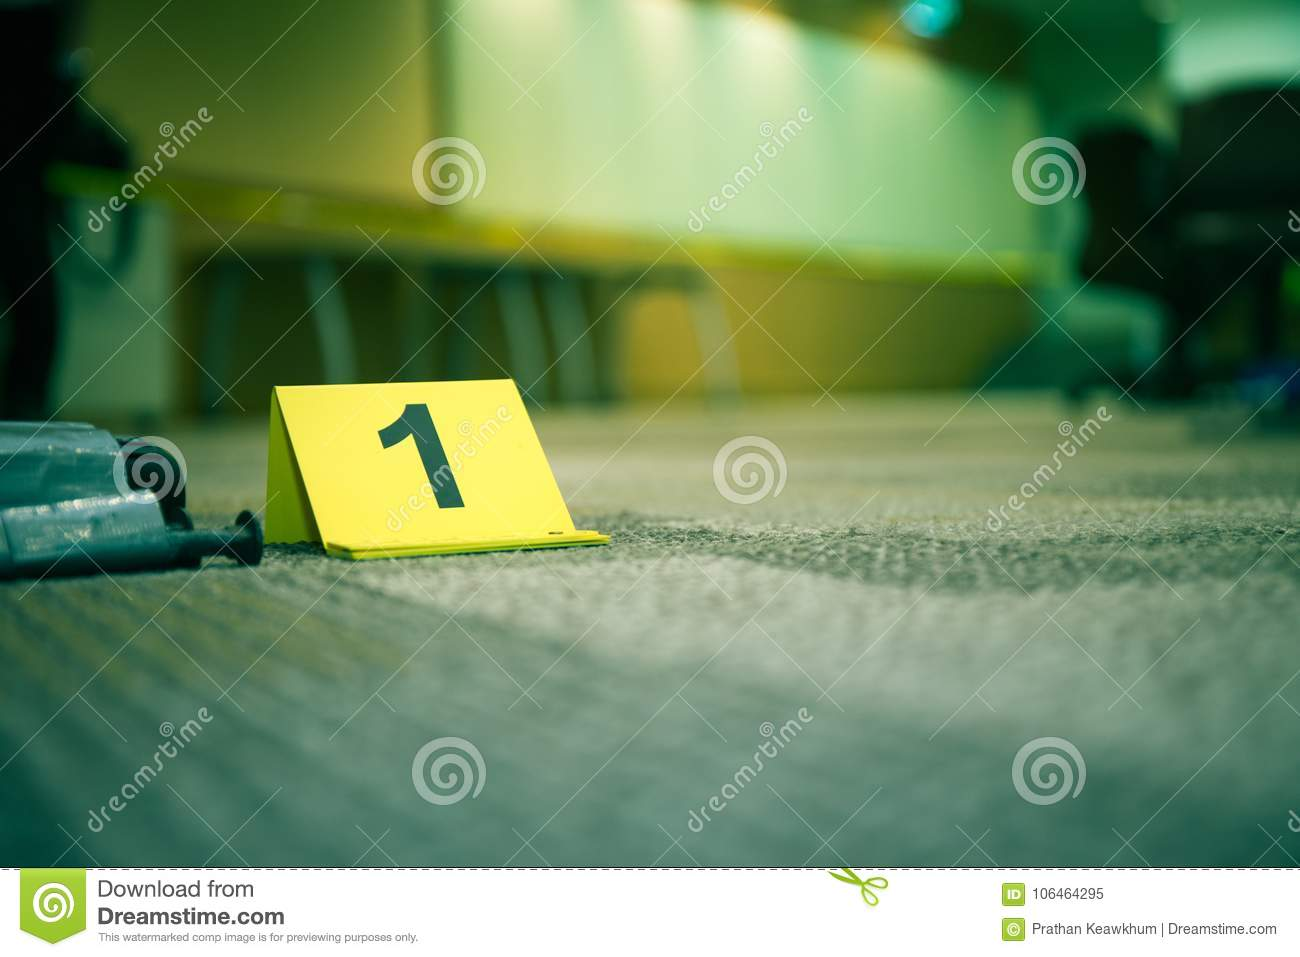 Evidence marker number 7 on carpet floor near suspect object in